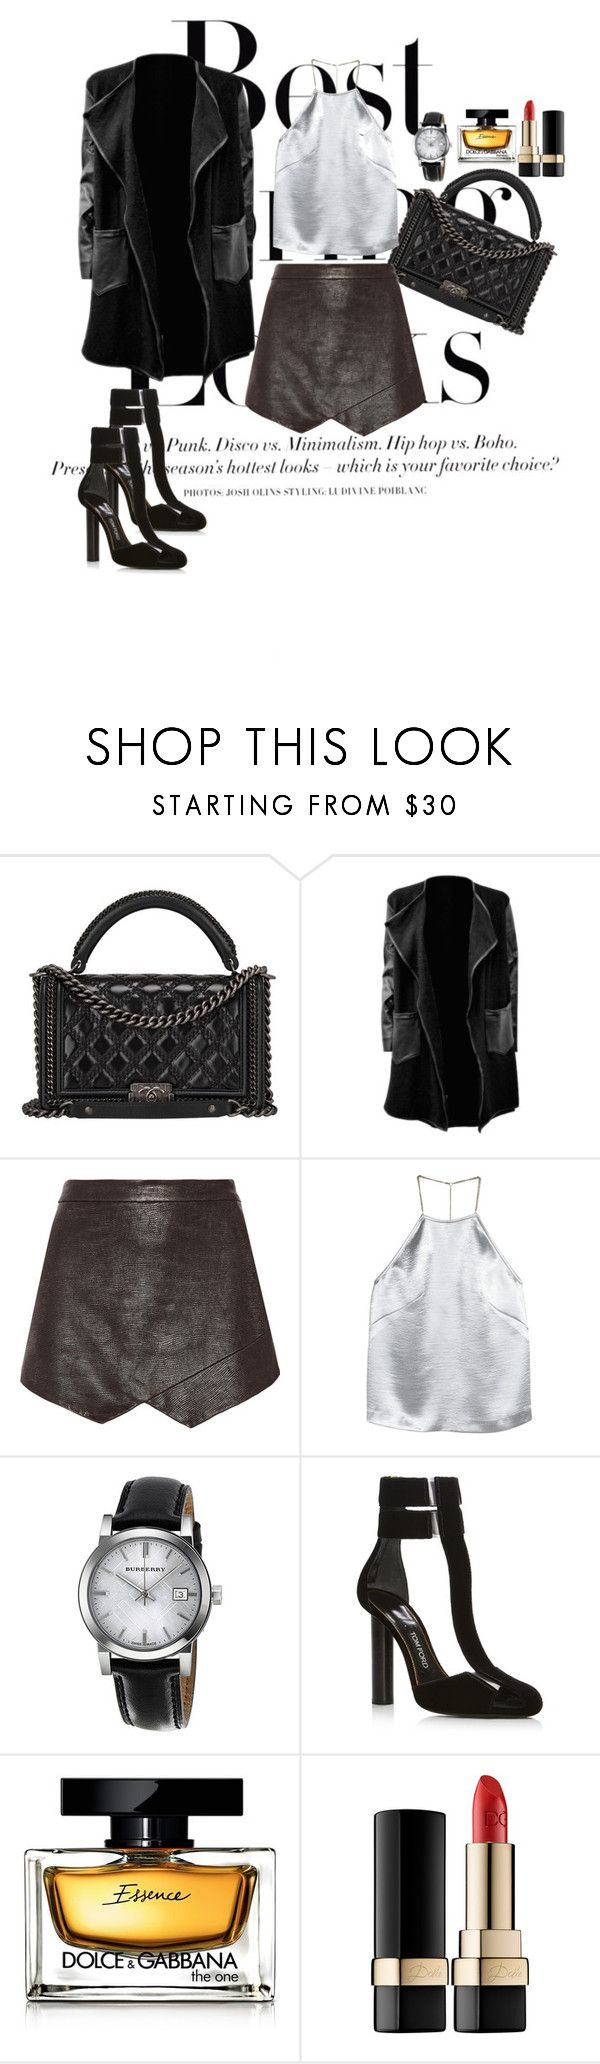 """Best spring look"" by popescu-io on Polyvore featuring H&M, Chanel, Mason by Michelle Mason, Burberry and Dolce&Gabbana"